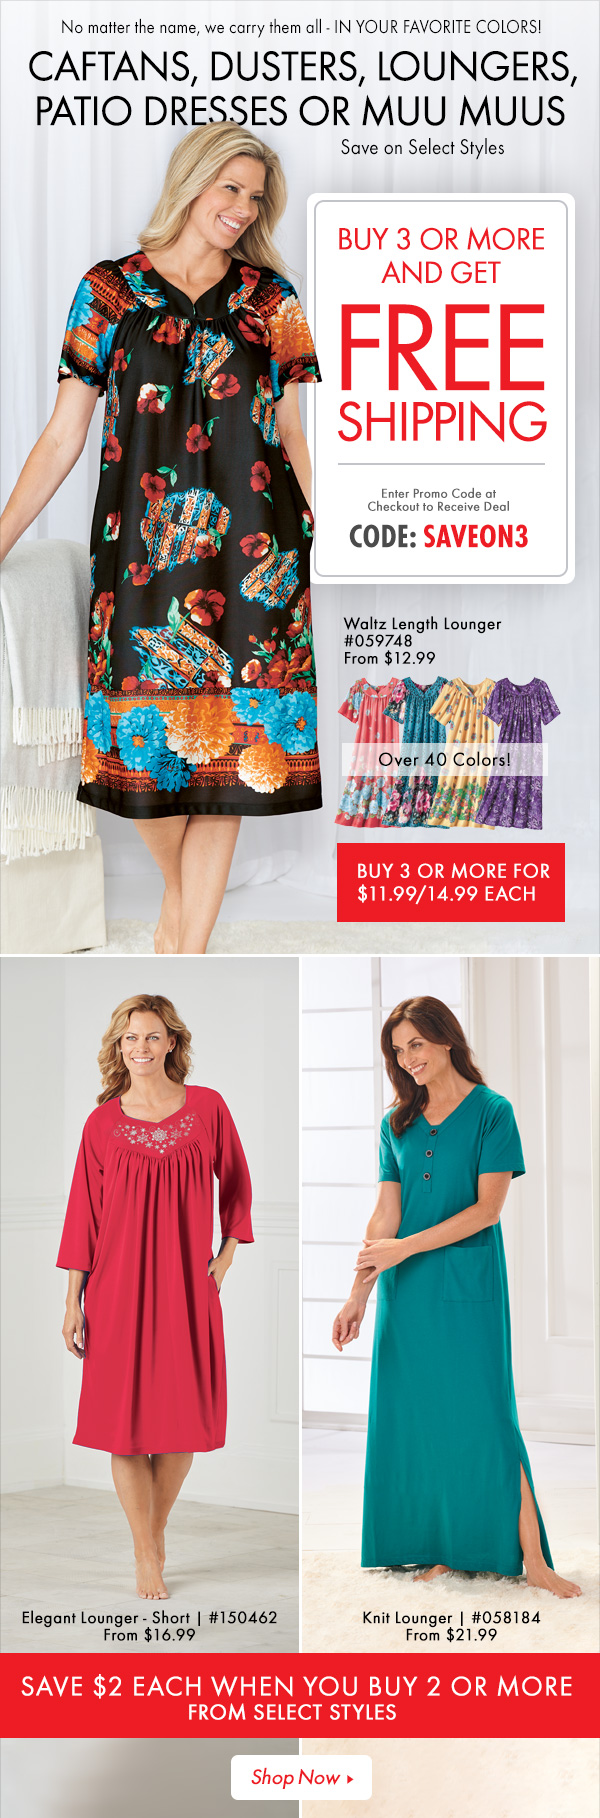 FREE SHIPPING on your favorite Caftans, Dusters, Loungers, Patio Dresses when you Buy 3